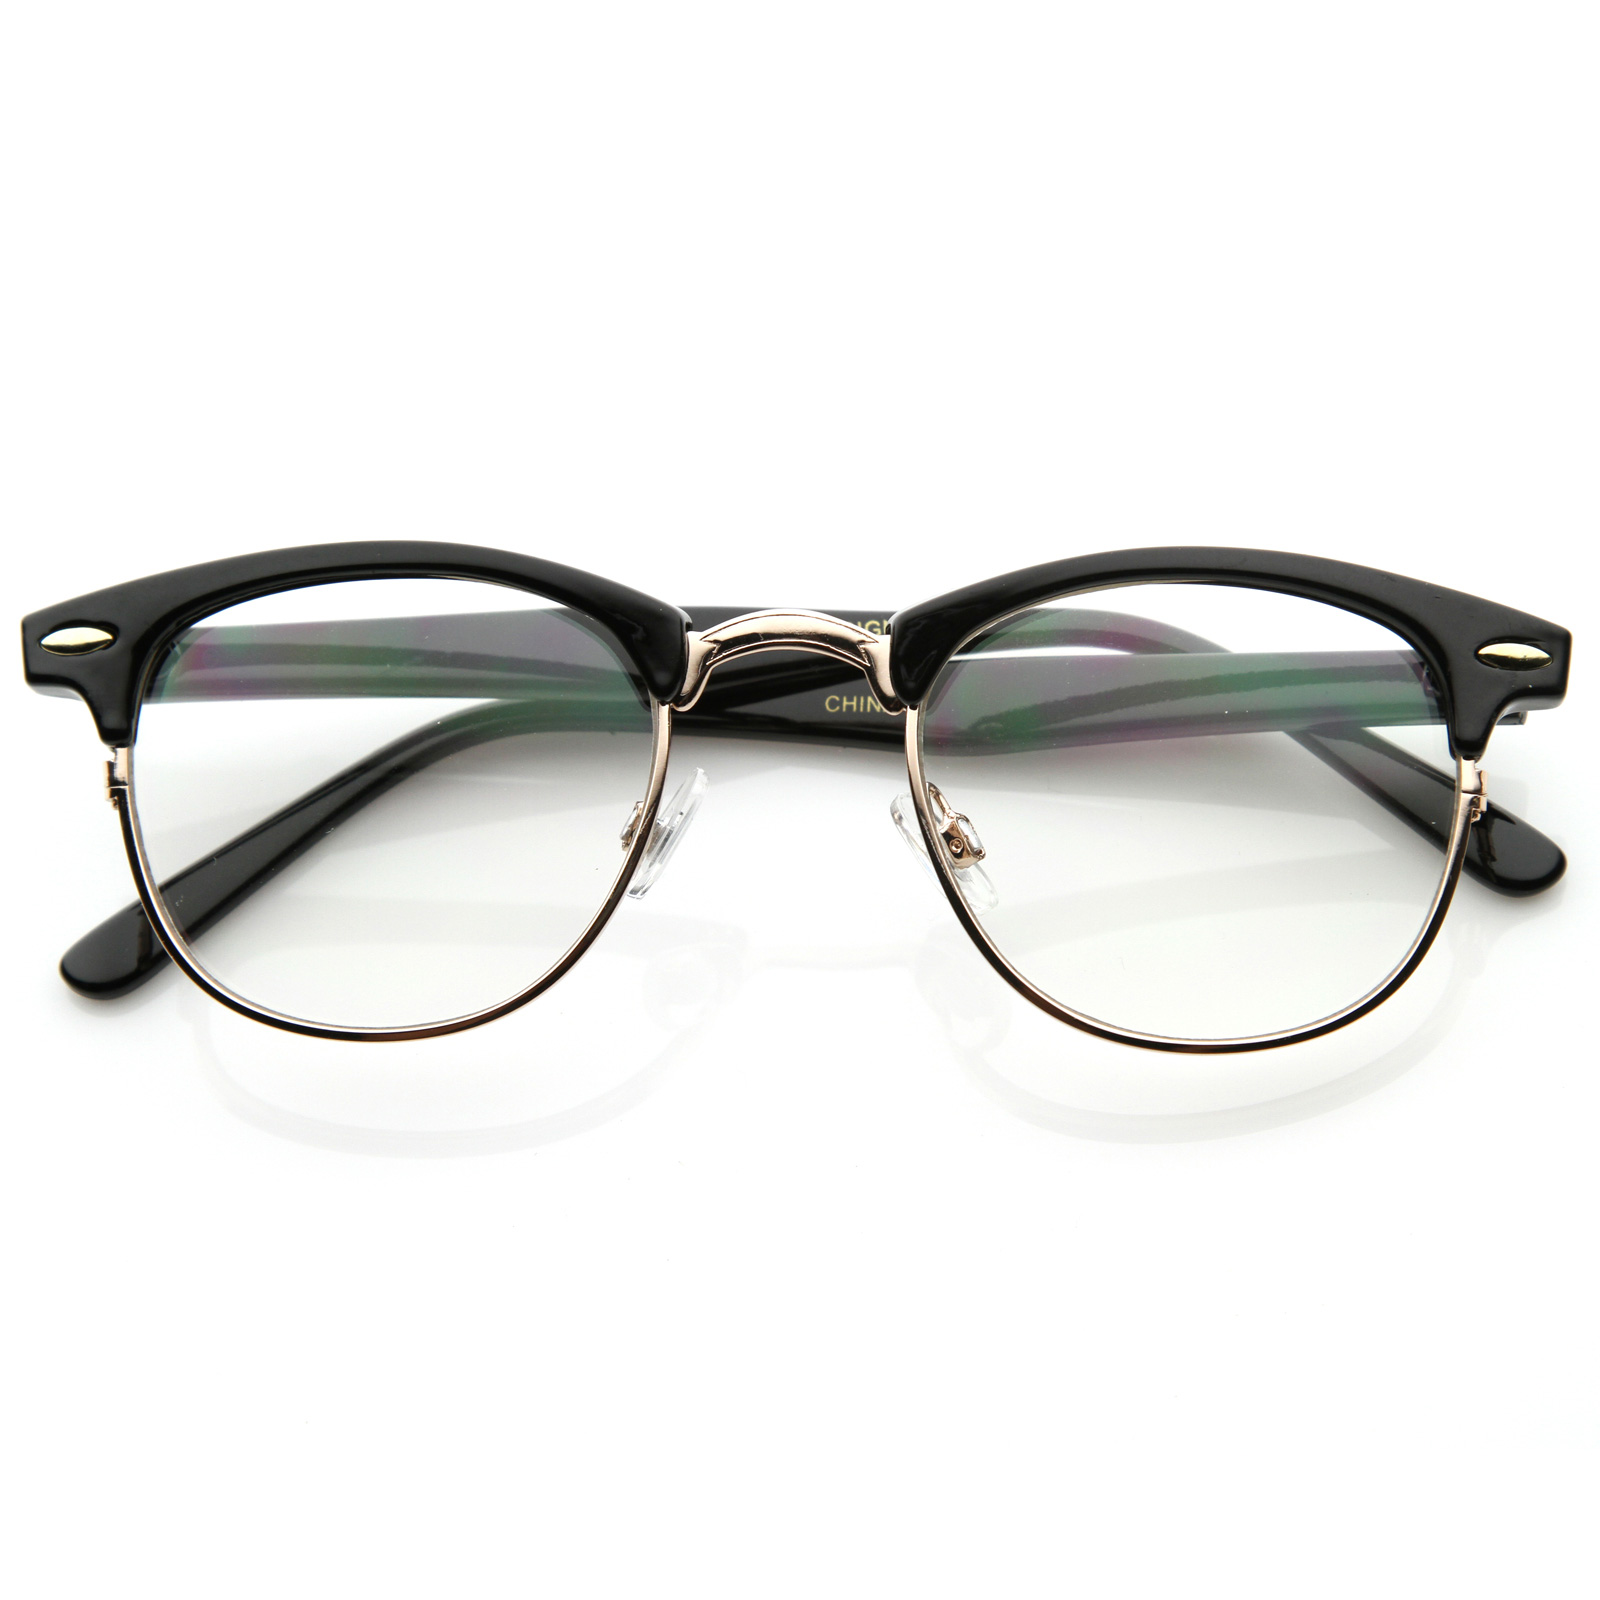 Half Frame Vintage Glasses : New Original RX Optical Classical Clear Lens Half Frame ...